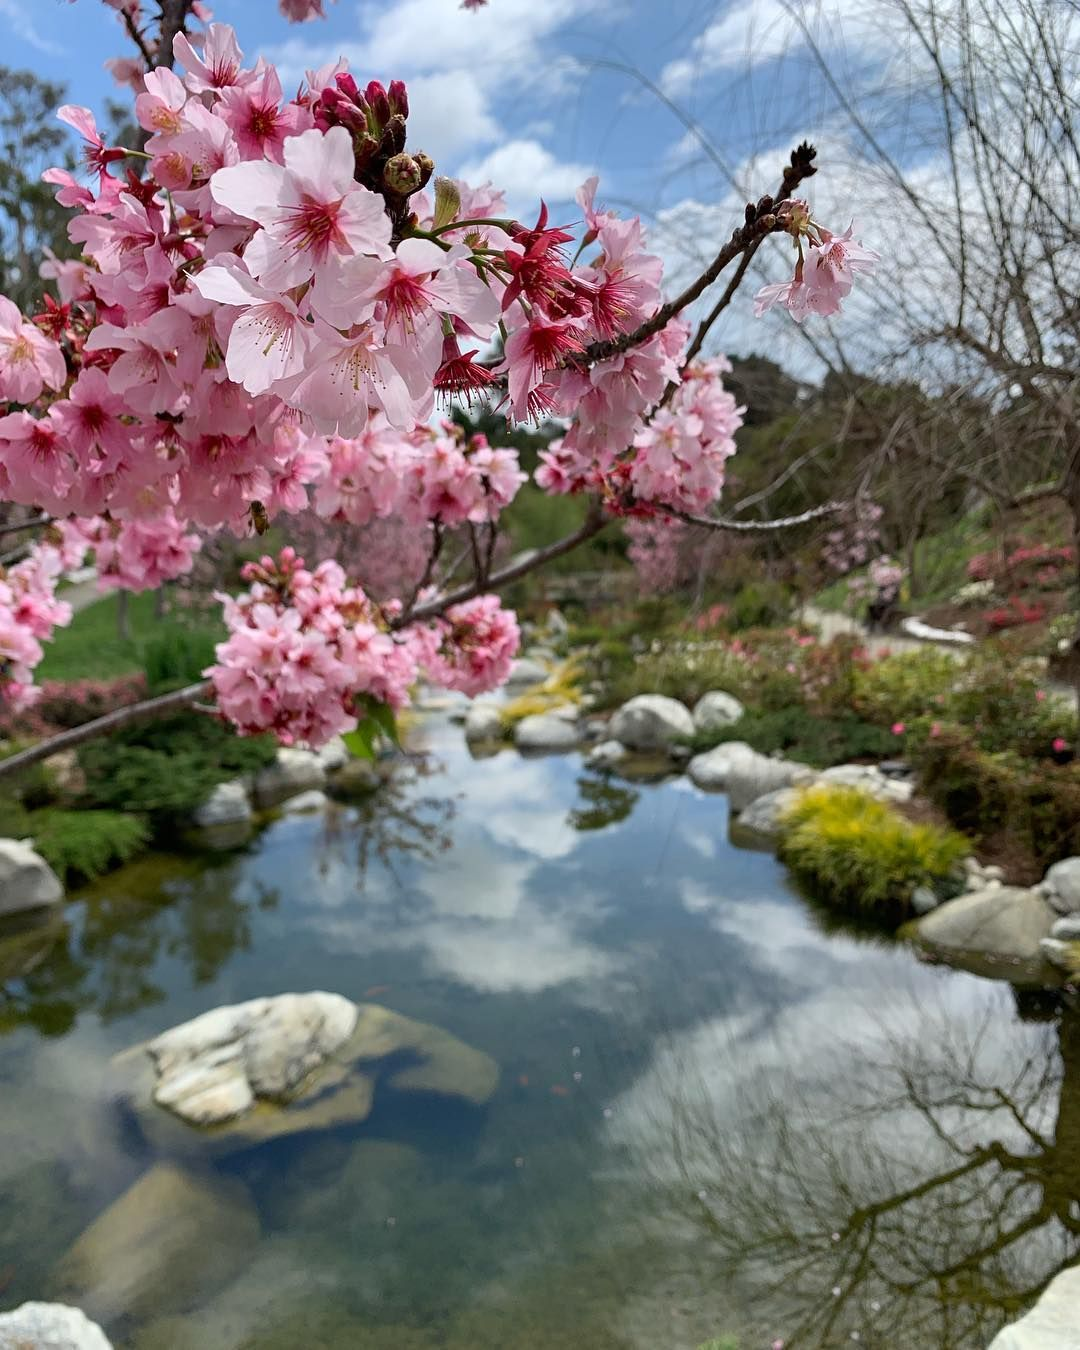 Watch The Best Youtube Videos Online And Spring Blossoms You To Me Cherryblossom Cherryblossom Cherry Blossom Festival Spring Blossom Blossom